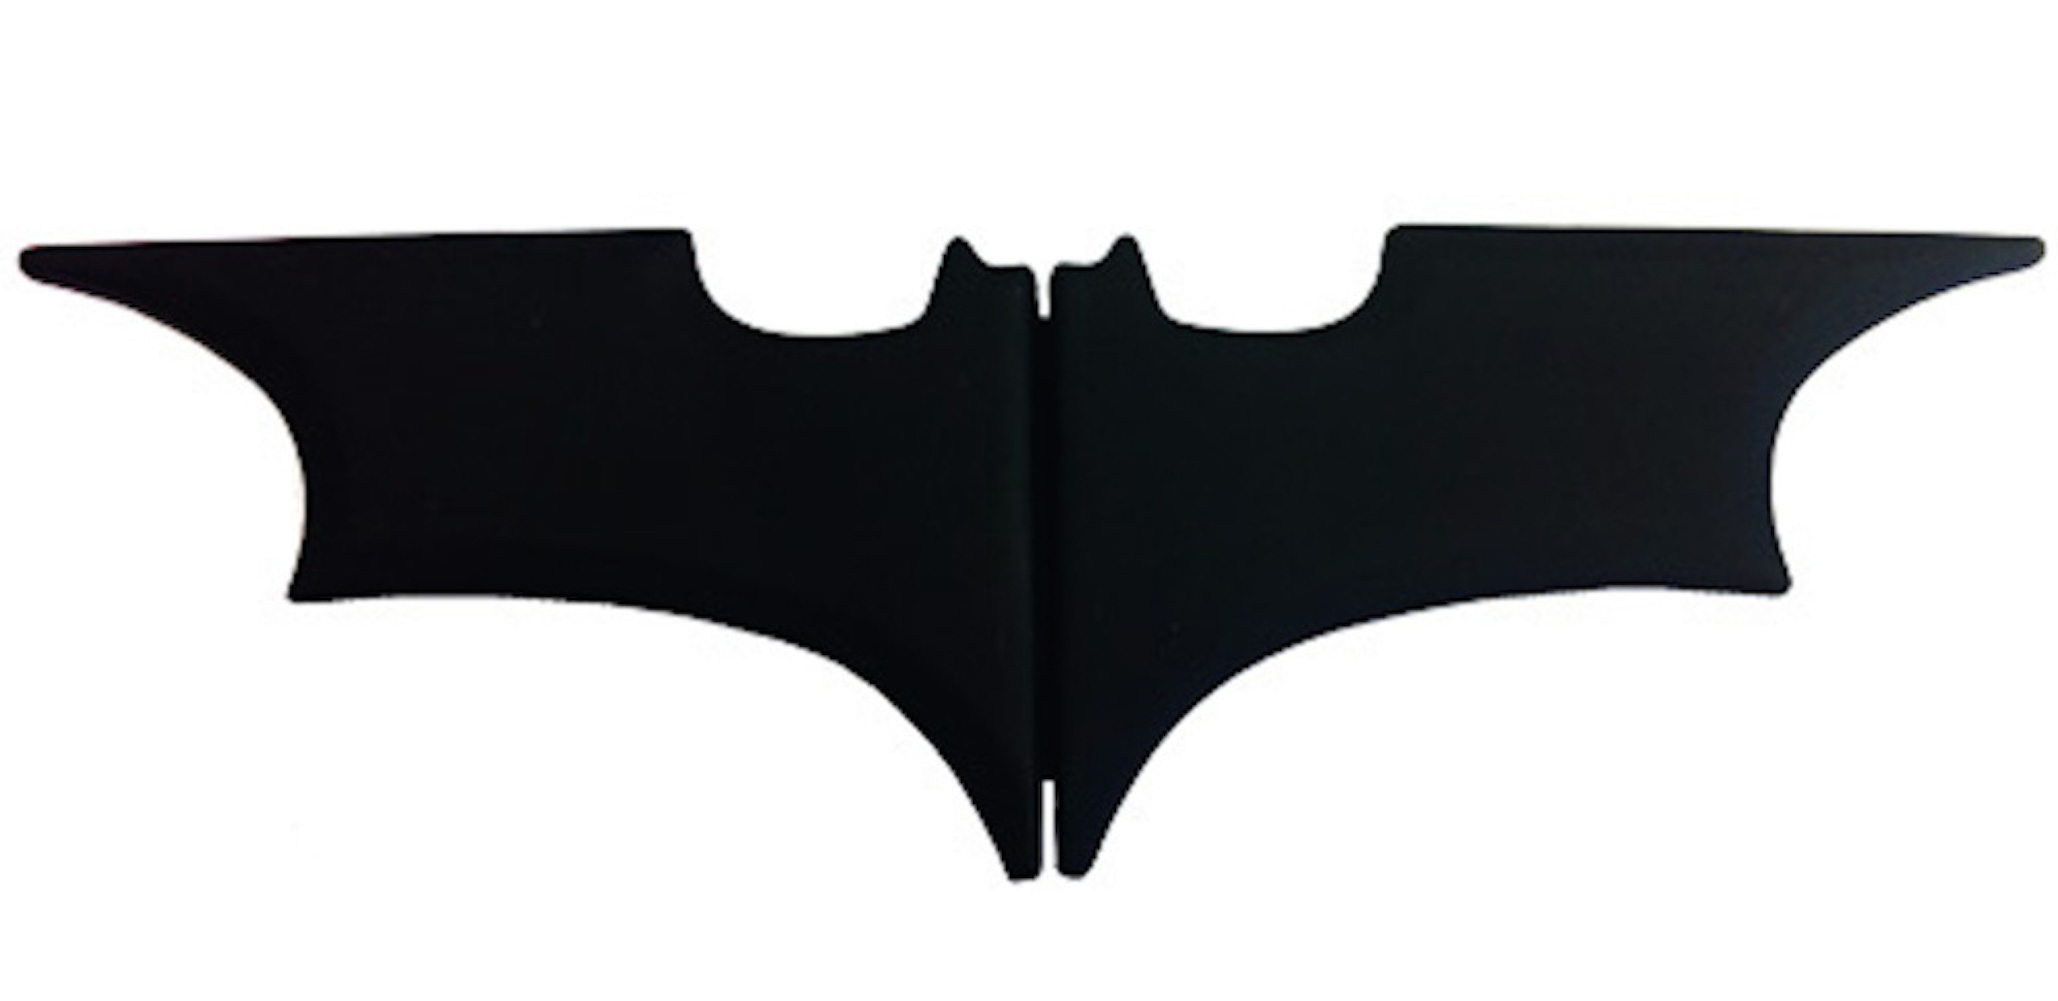 Batarang Folding Money Clip (Black)(2)